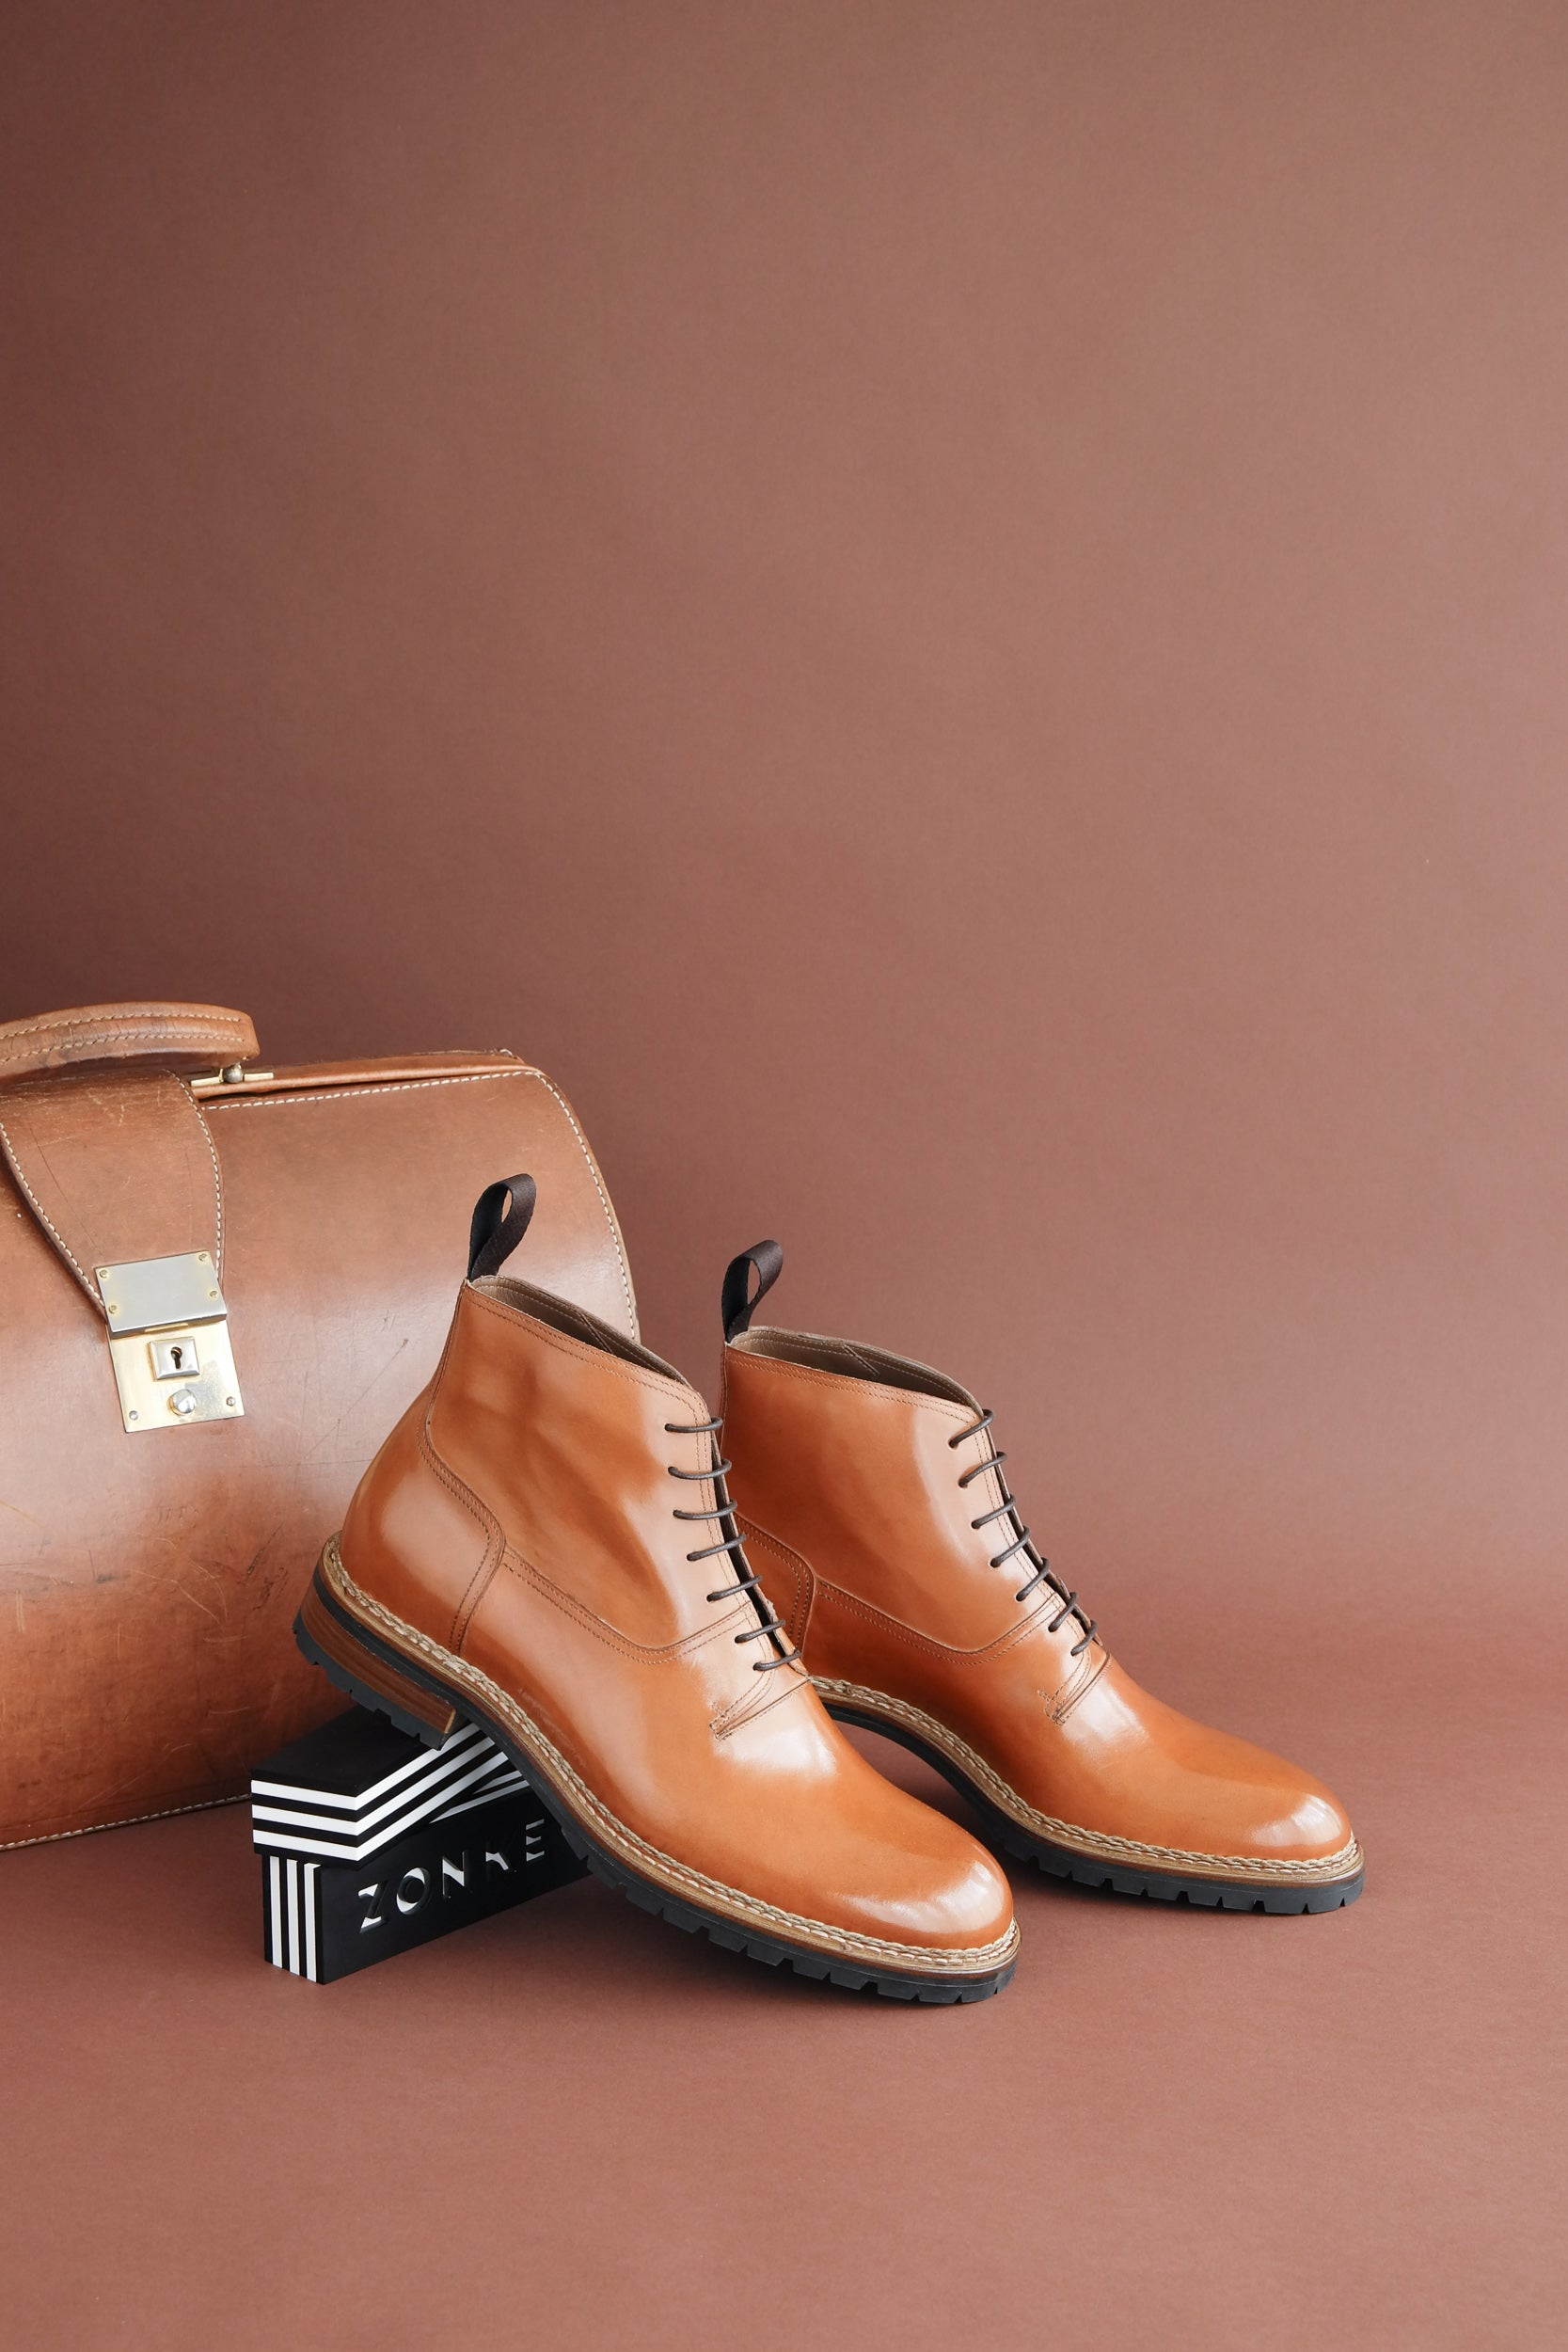 vegetable tanned bovine leather insoles and hand sewn Norvegese leather/commando rubber soles. (Art. ZB 238)